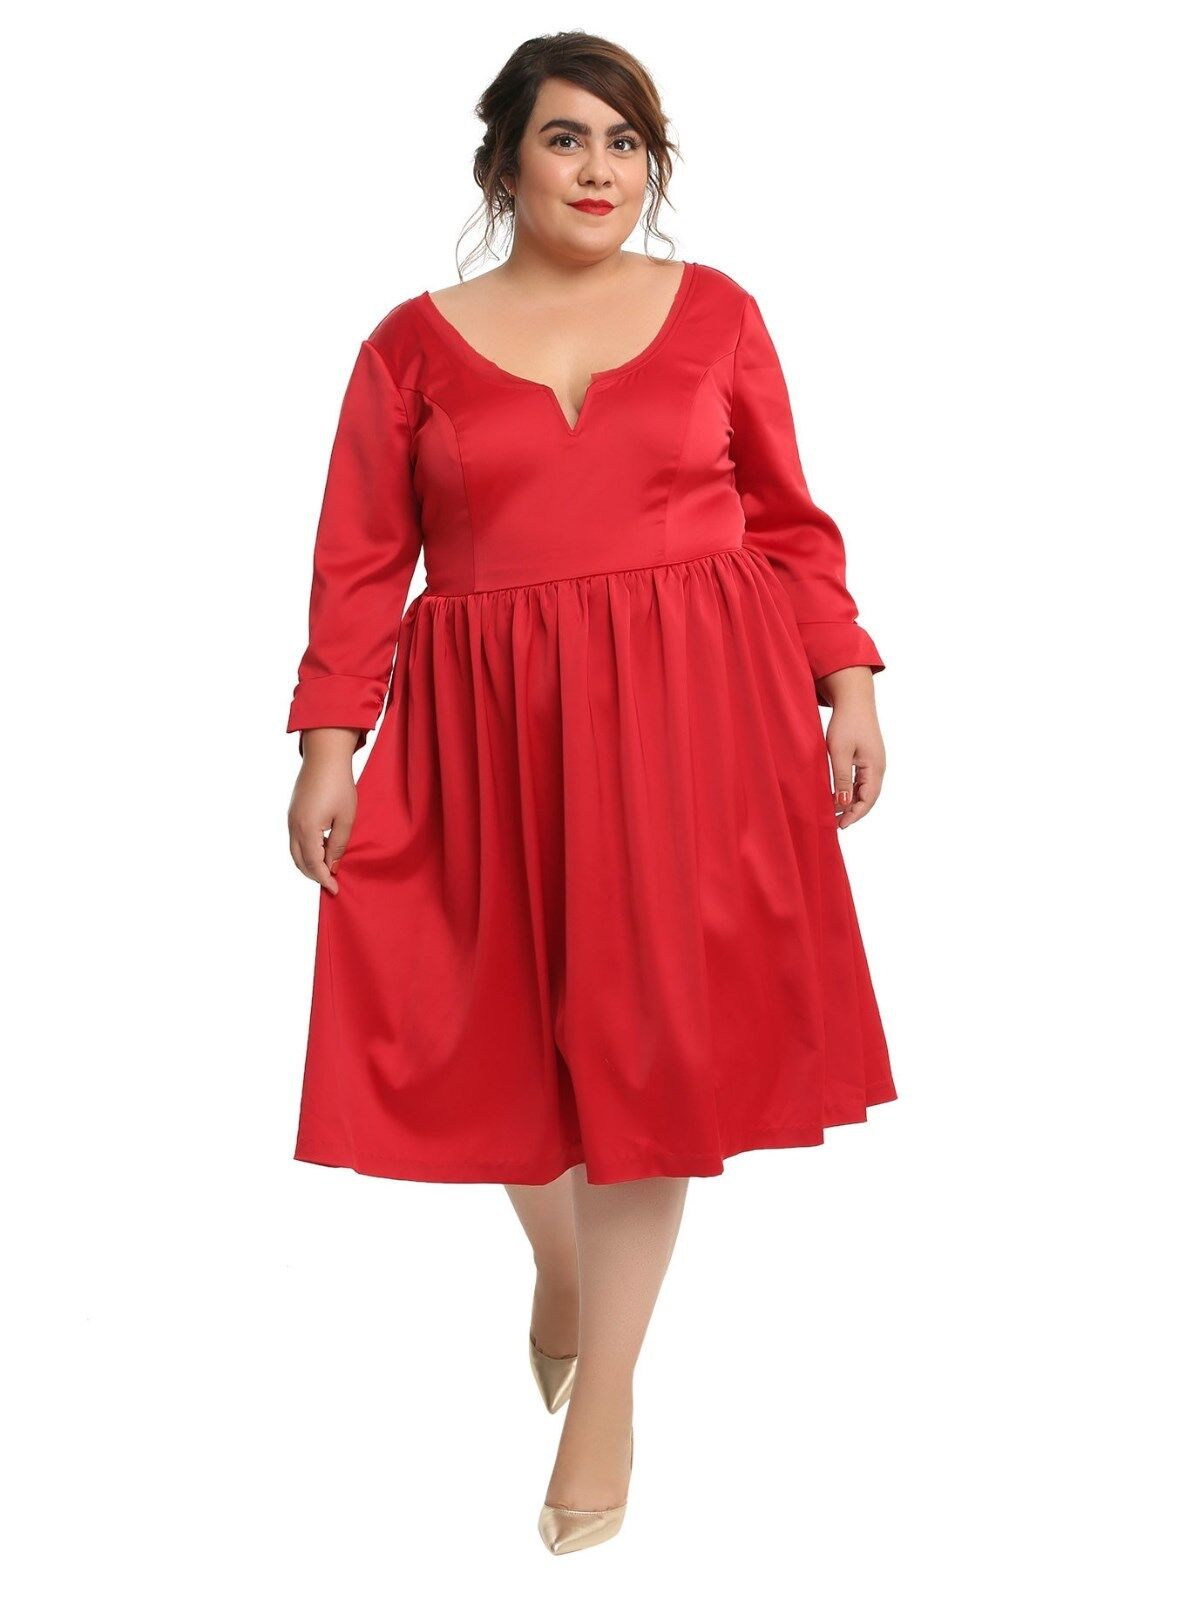 Outlander Red Party Dress Size Large New With Tags Licensed Plus Size 14